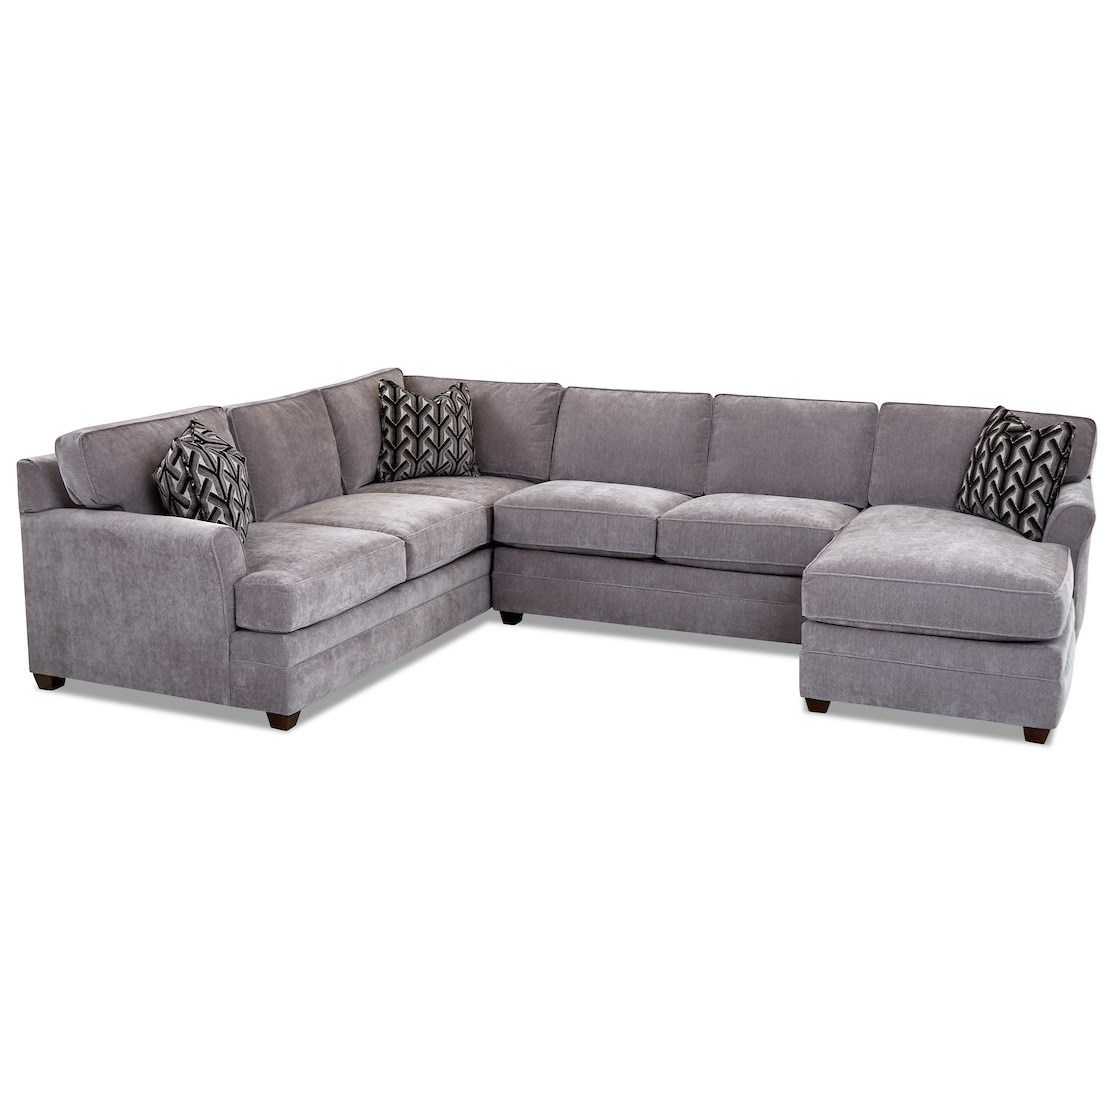 Transitional 3-Piece Sectional Sofa with RAF Chaise